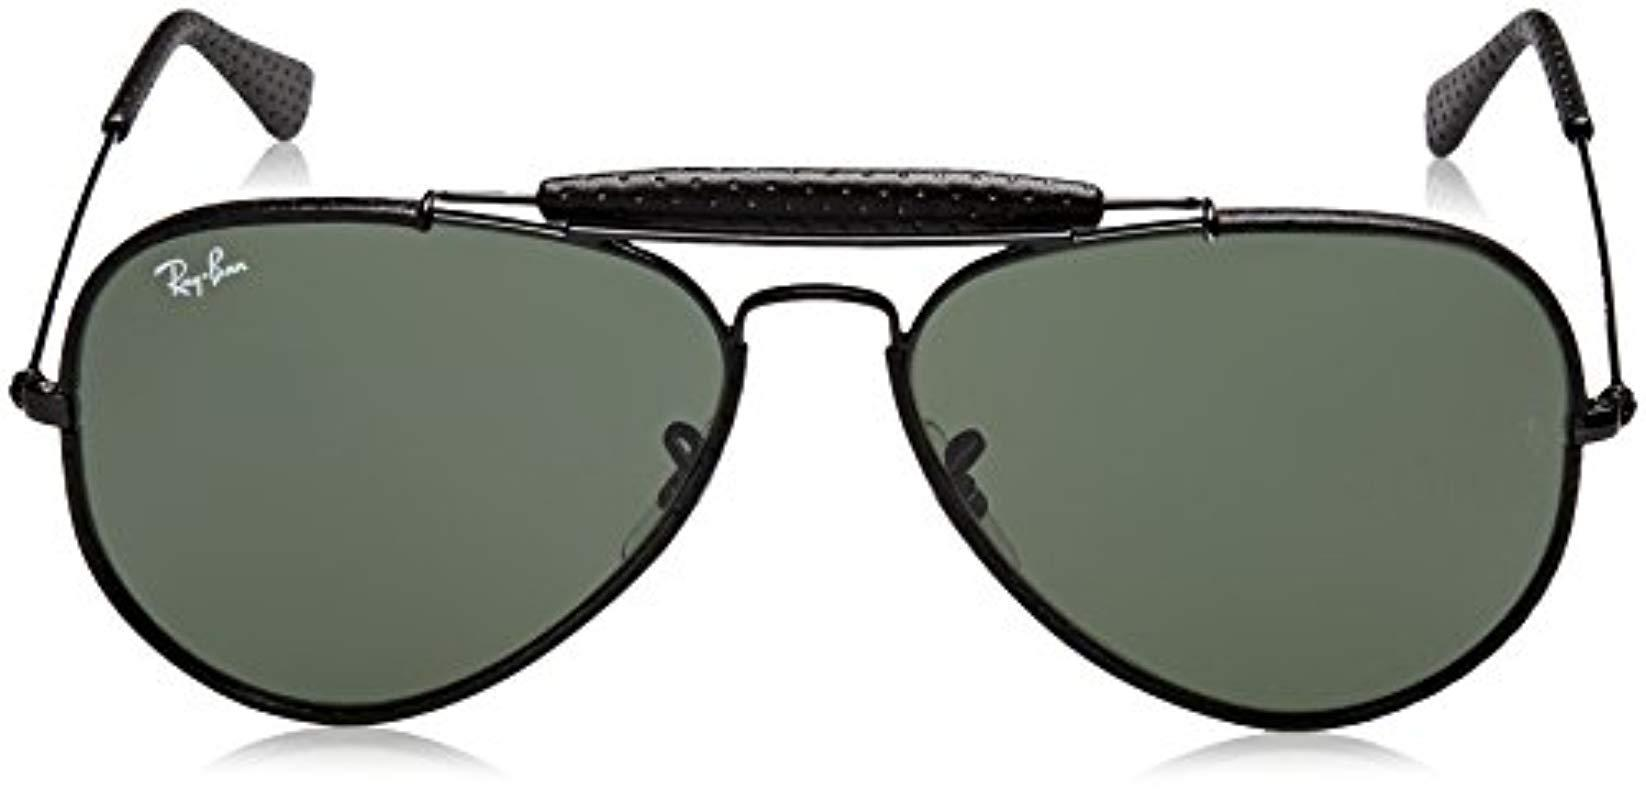 2b18ce4845 get ray ban rb3422q craft outdoorsman ii aviator years .